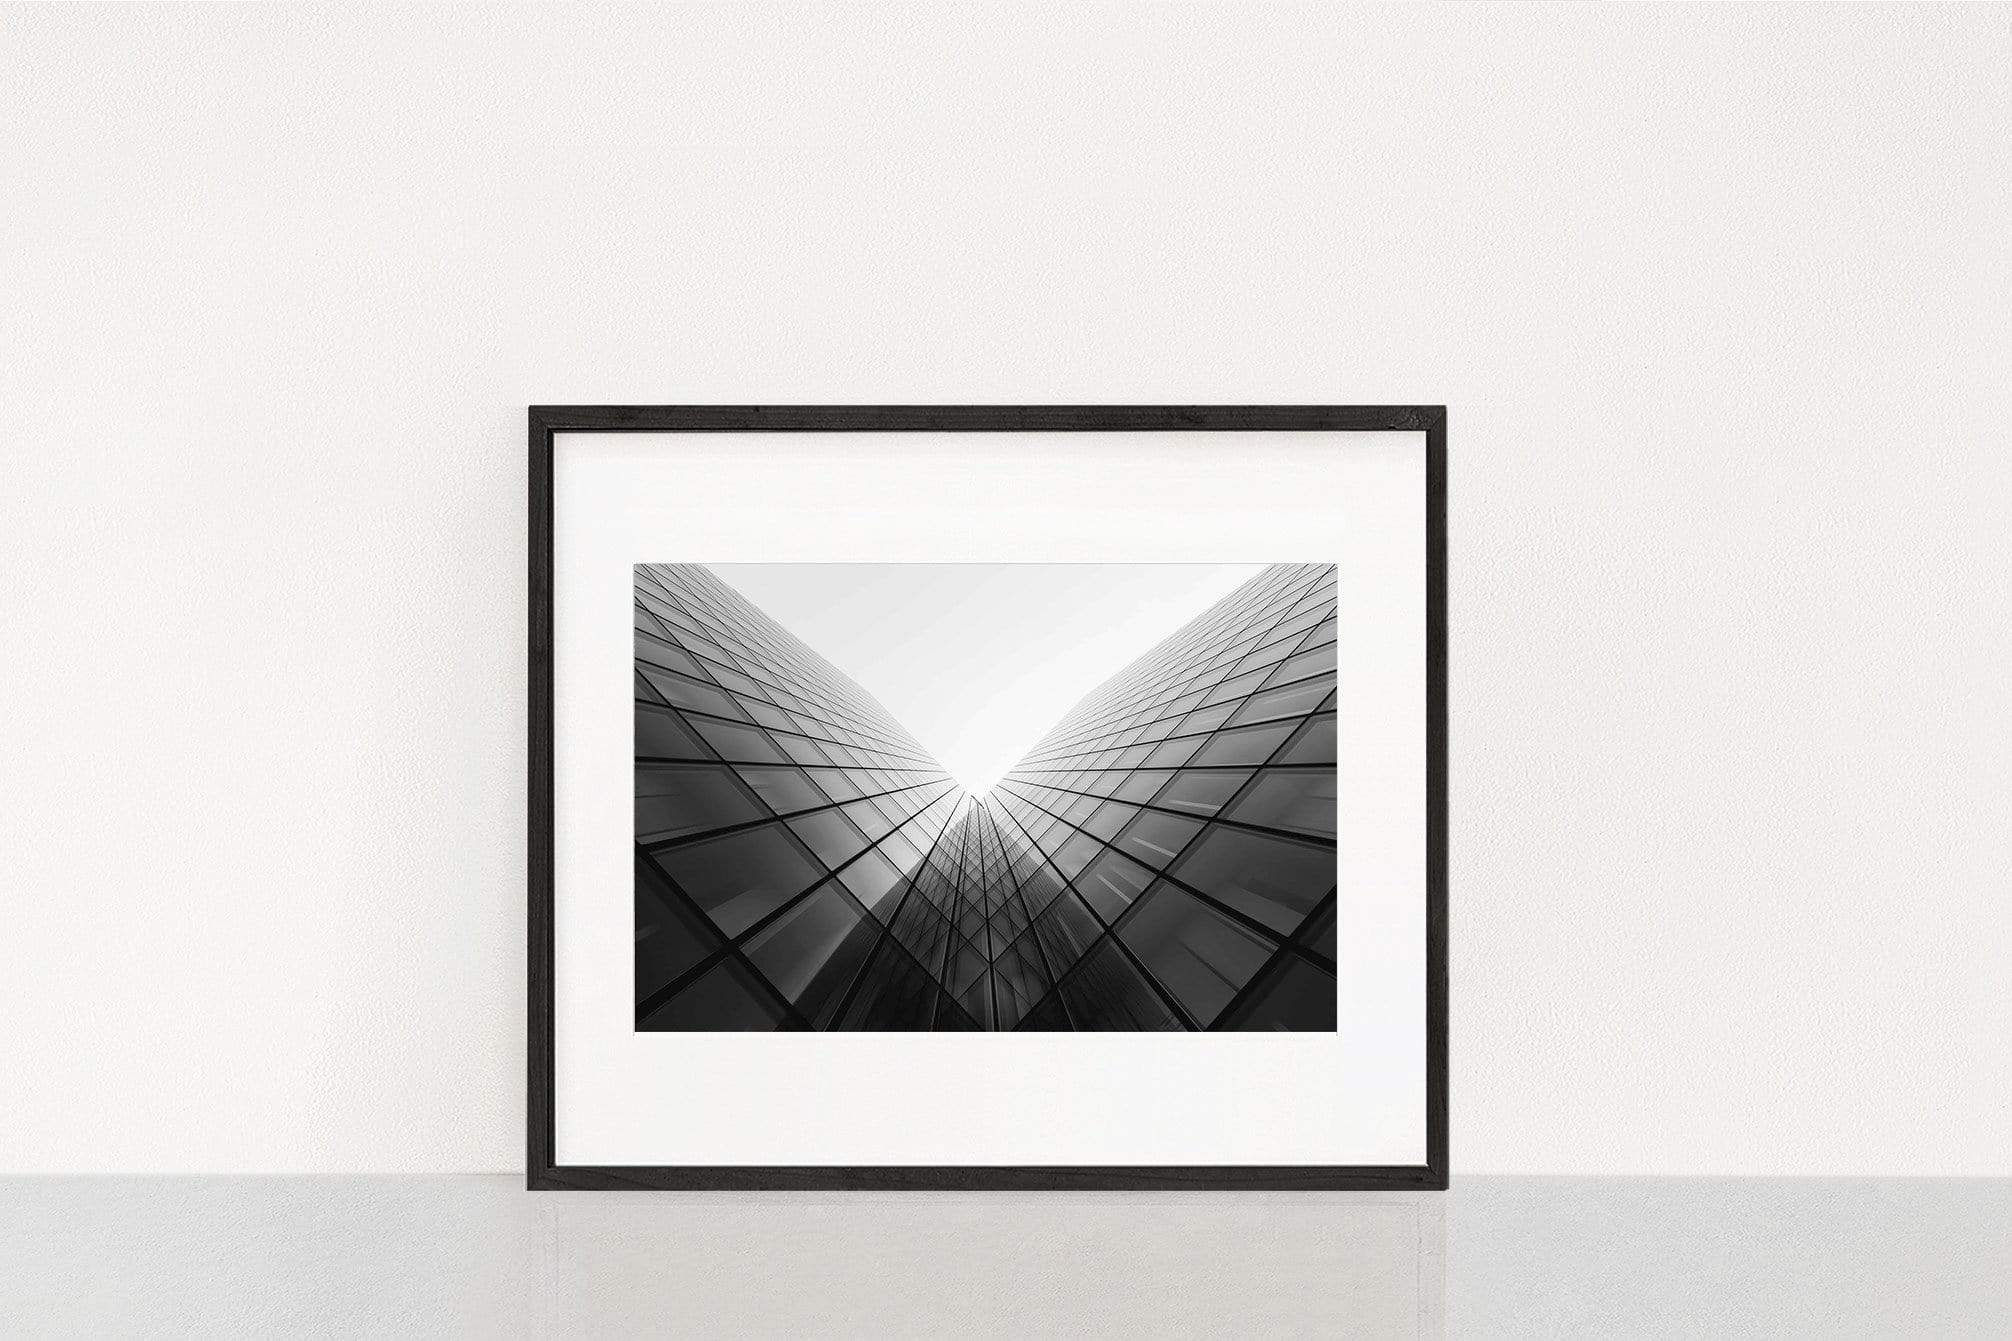 Photography Wall Art Steven U Building perspective Normal 25x38cm / Black